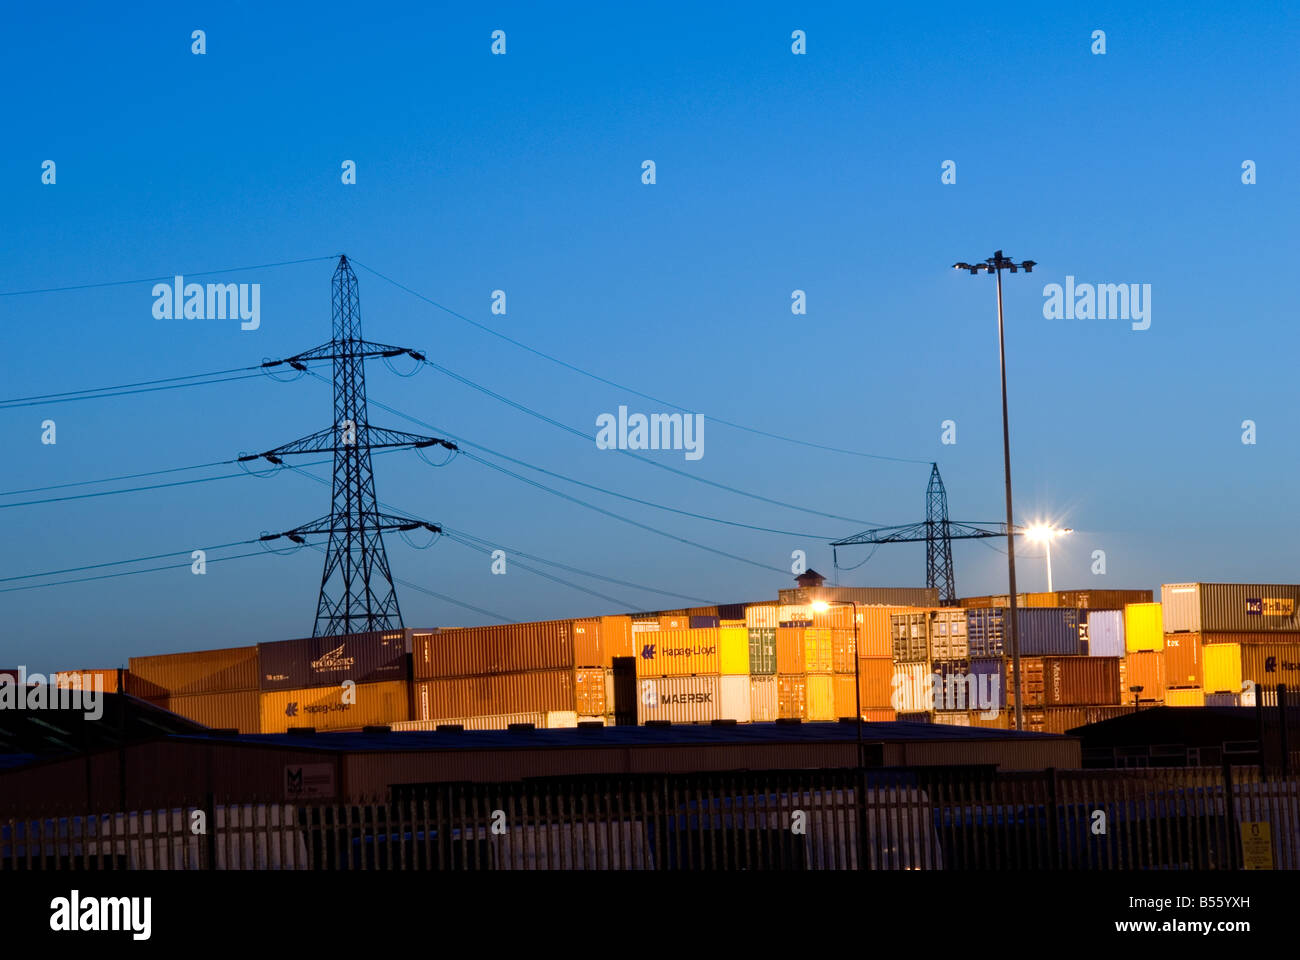 A view of large storage containers at sunrise lit up by spot lights with electricity pylons silhouetted in the background - Stock Image